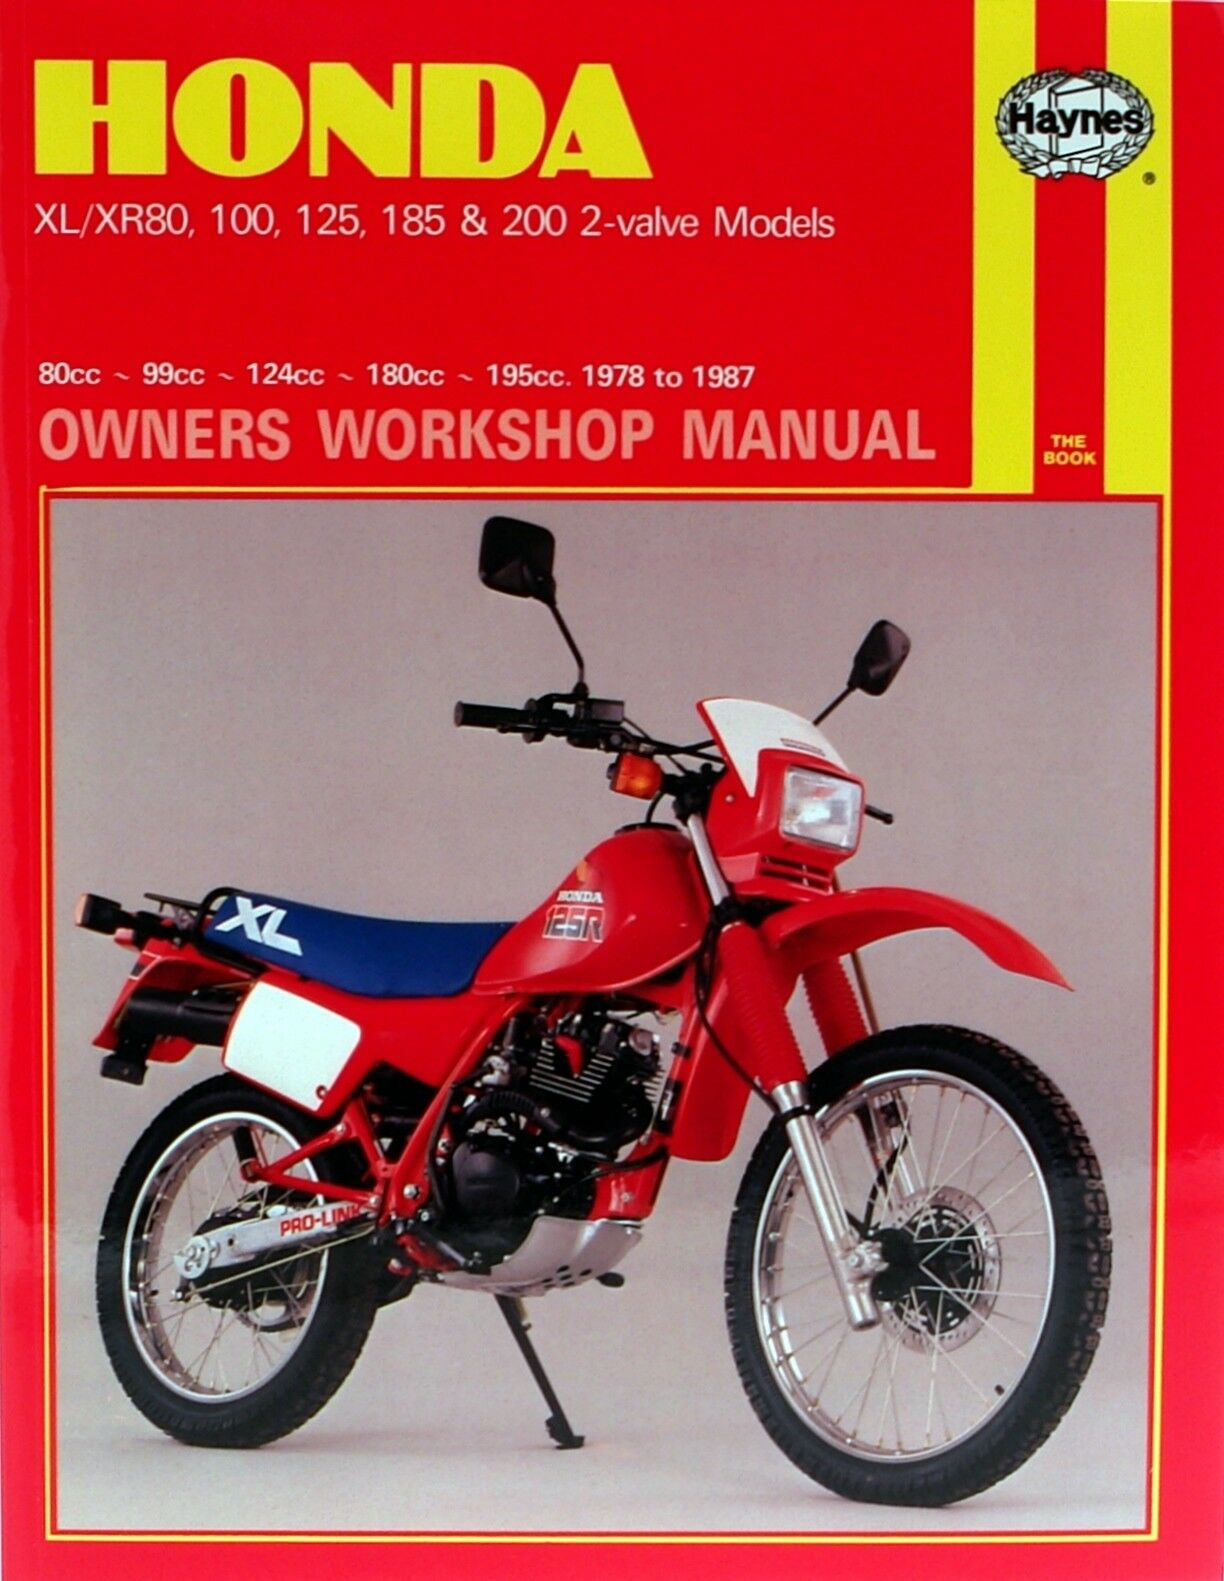 Honda Xl80 Xr80 Xl100 Xl125 Xl185 Xl200 Xr200 Xl Xr 80 100 125 185 Cb125s Chilton Electrical Wiring Diagram 1 Of 3only Available